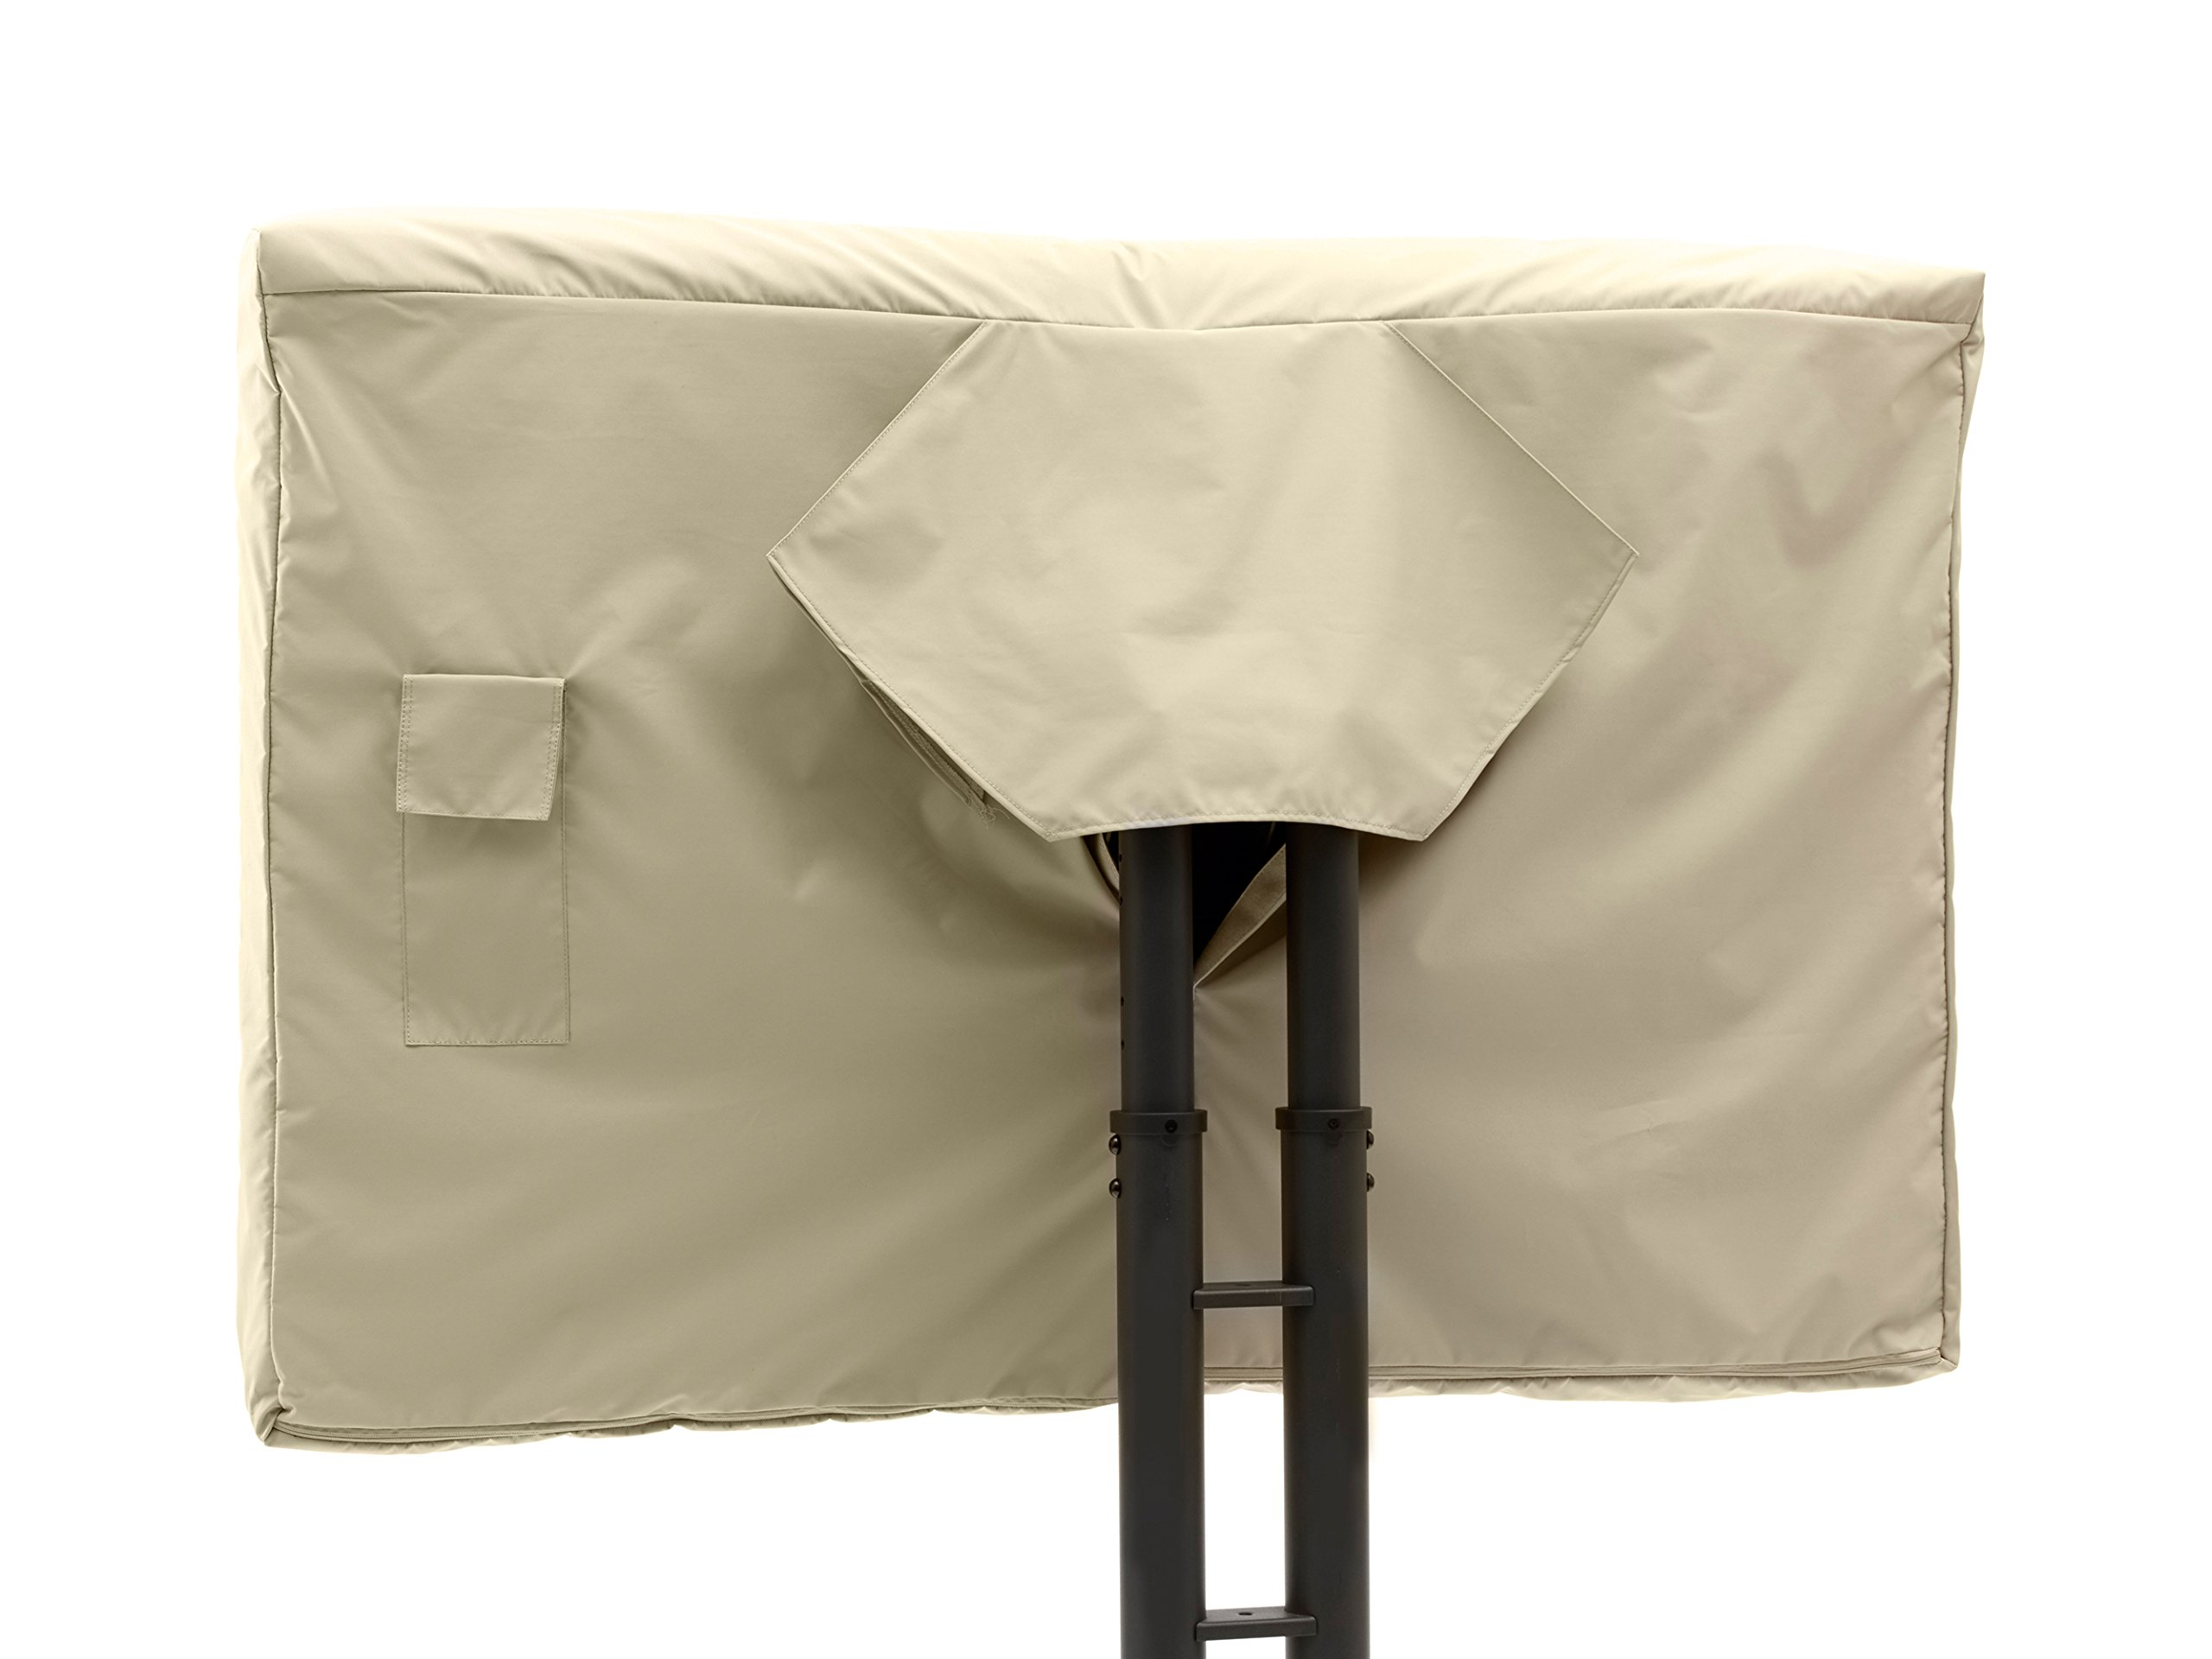 CoverMates - Outdoor TV Cover - Fits 42 to 45 Inch TV's - Elite - 300 Denier Stock-Dyed Polyester - Full Coverage - Front Interior Fleece Lining - 3 Year Warranty - Water Resistant - Khaki